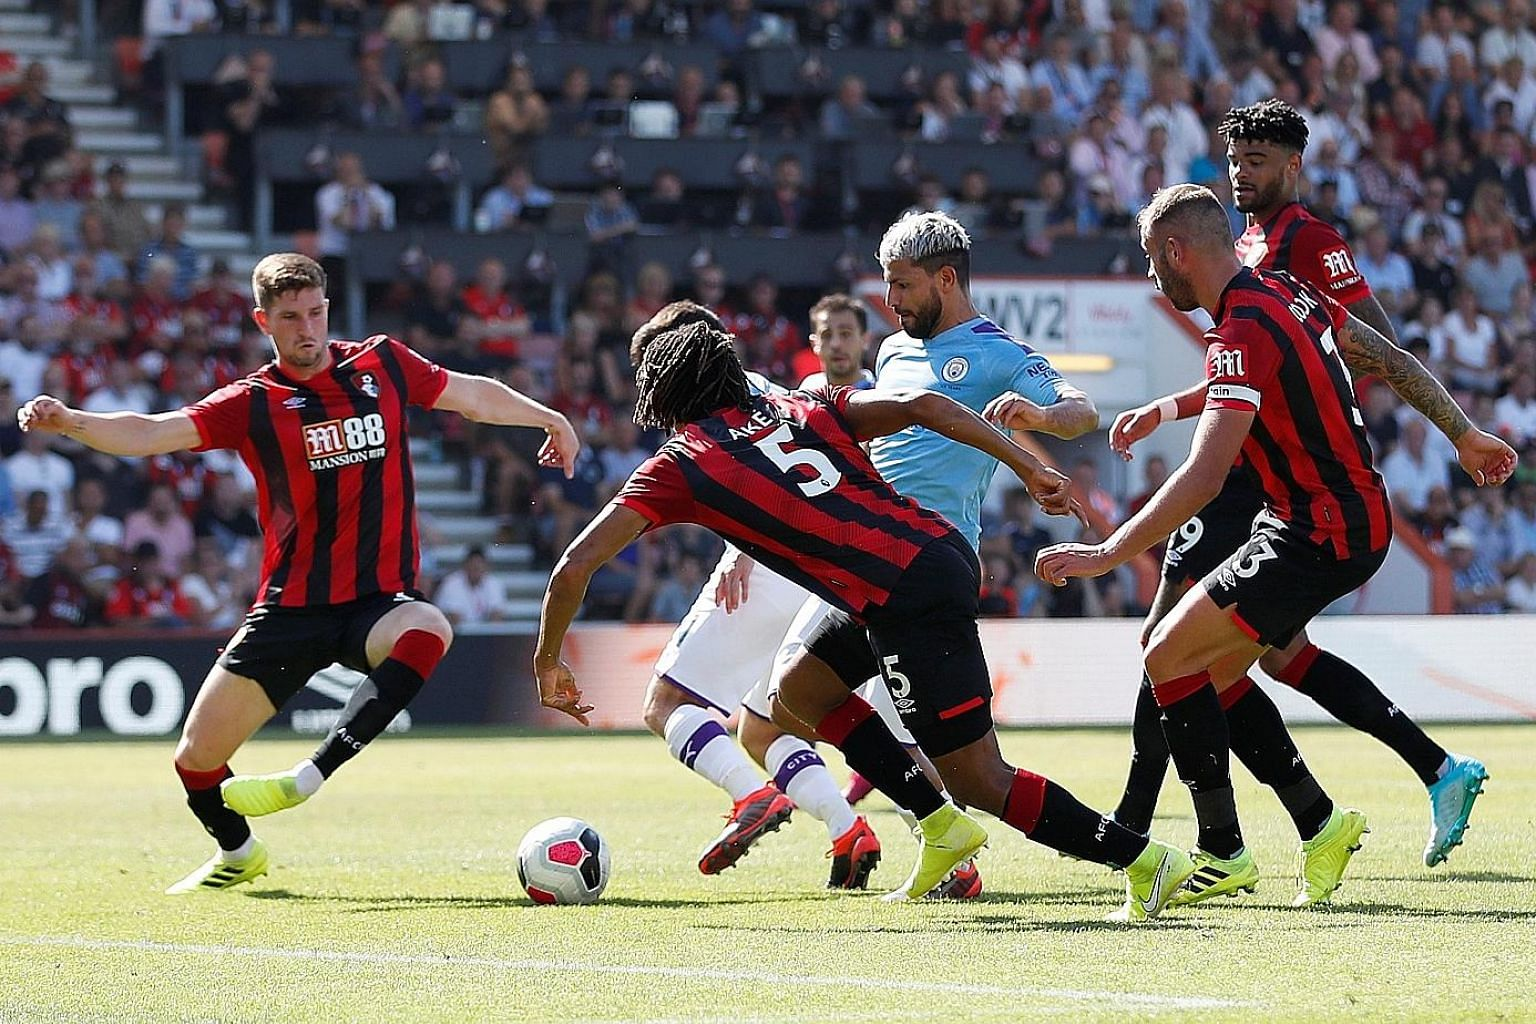 Sergio Aguero slaloming through a sea of defenders to convert Manchester City's third goal. It was the Argentinian striker's second of the game as he ended Bournemouth's resistance. PHOTO: REUTERS